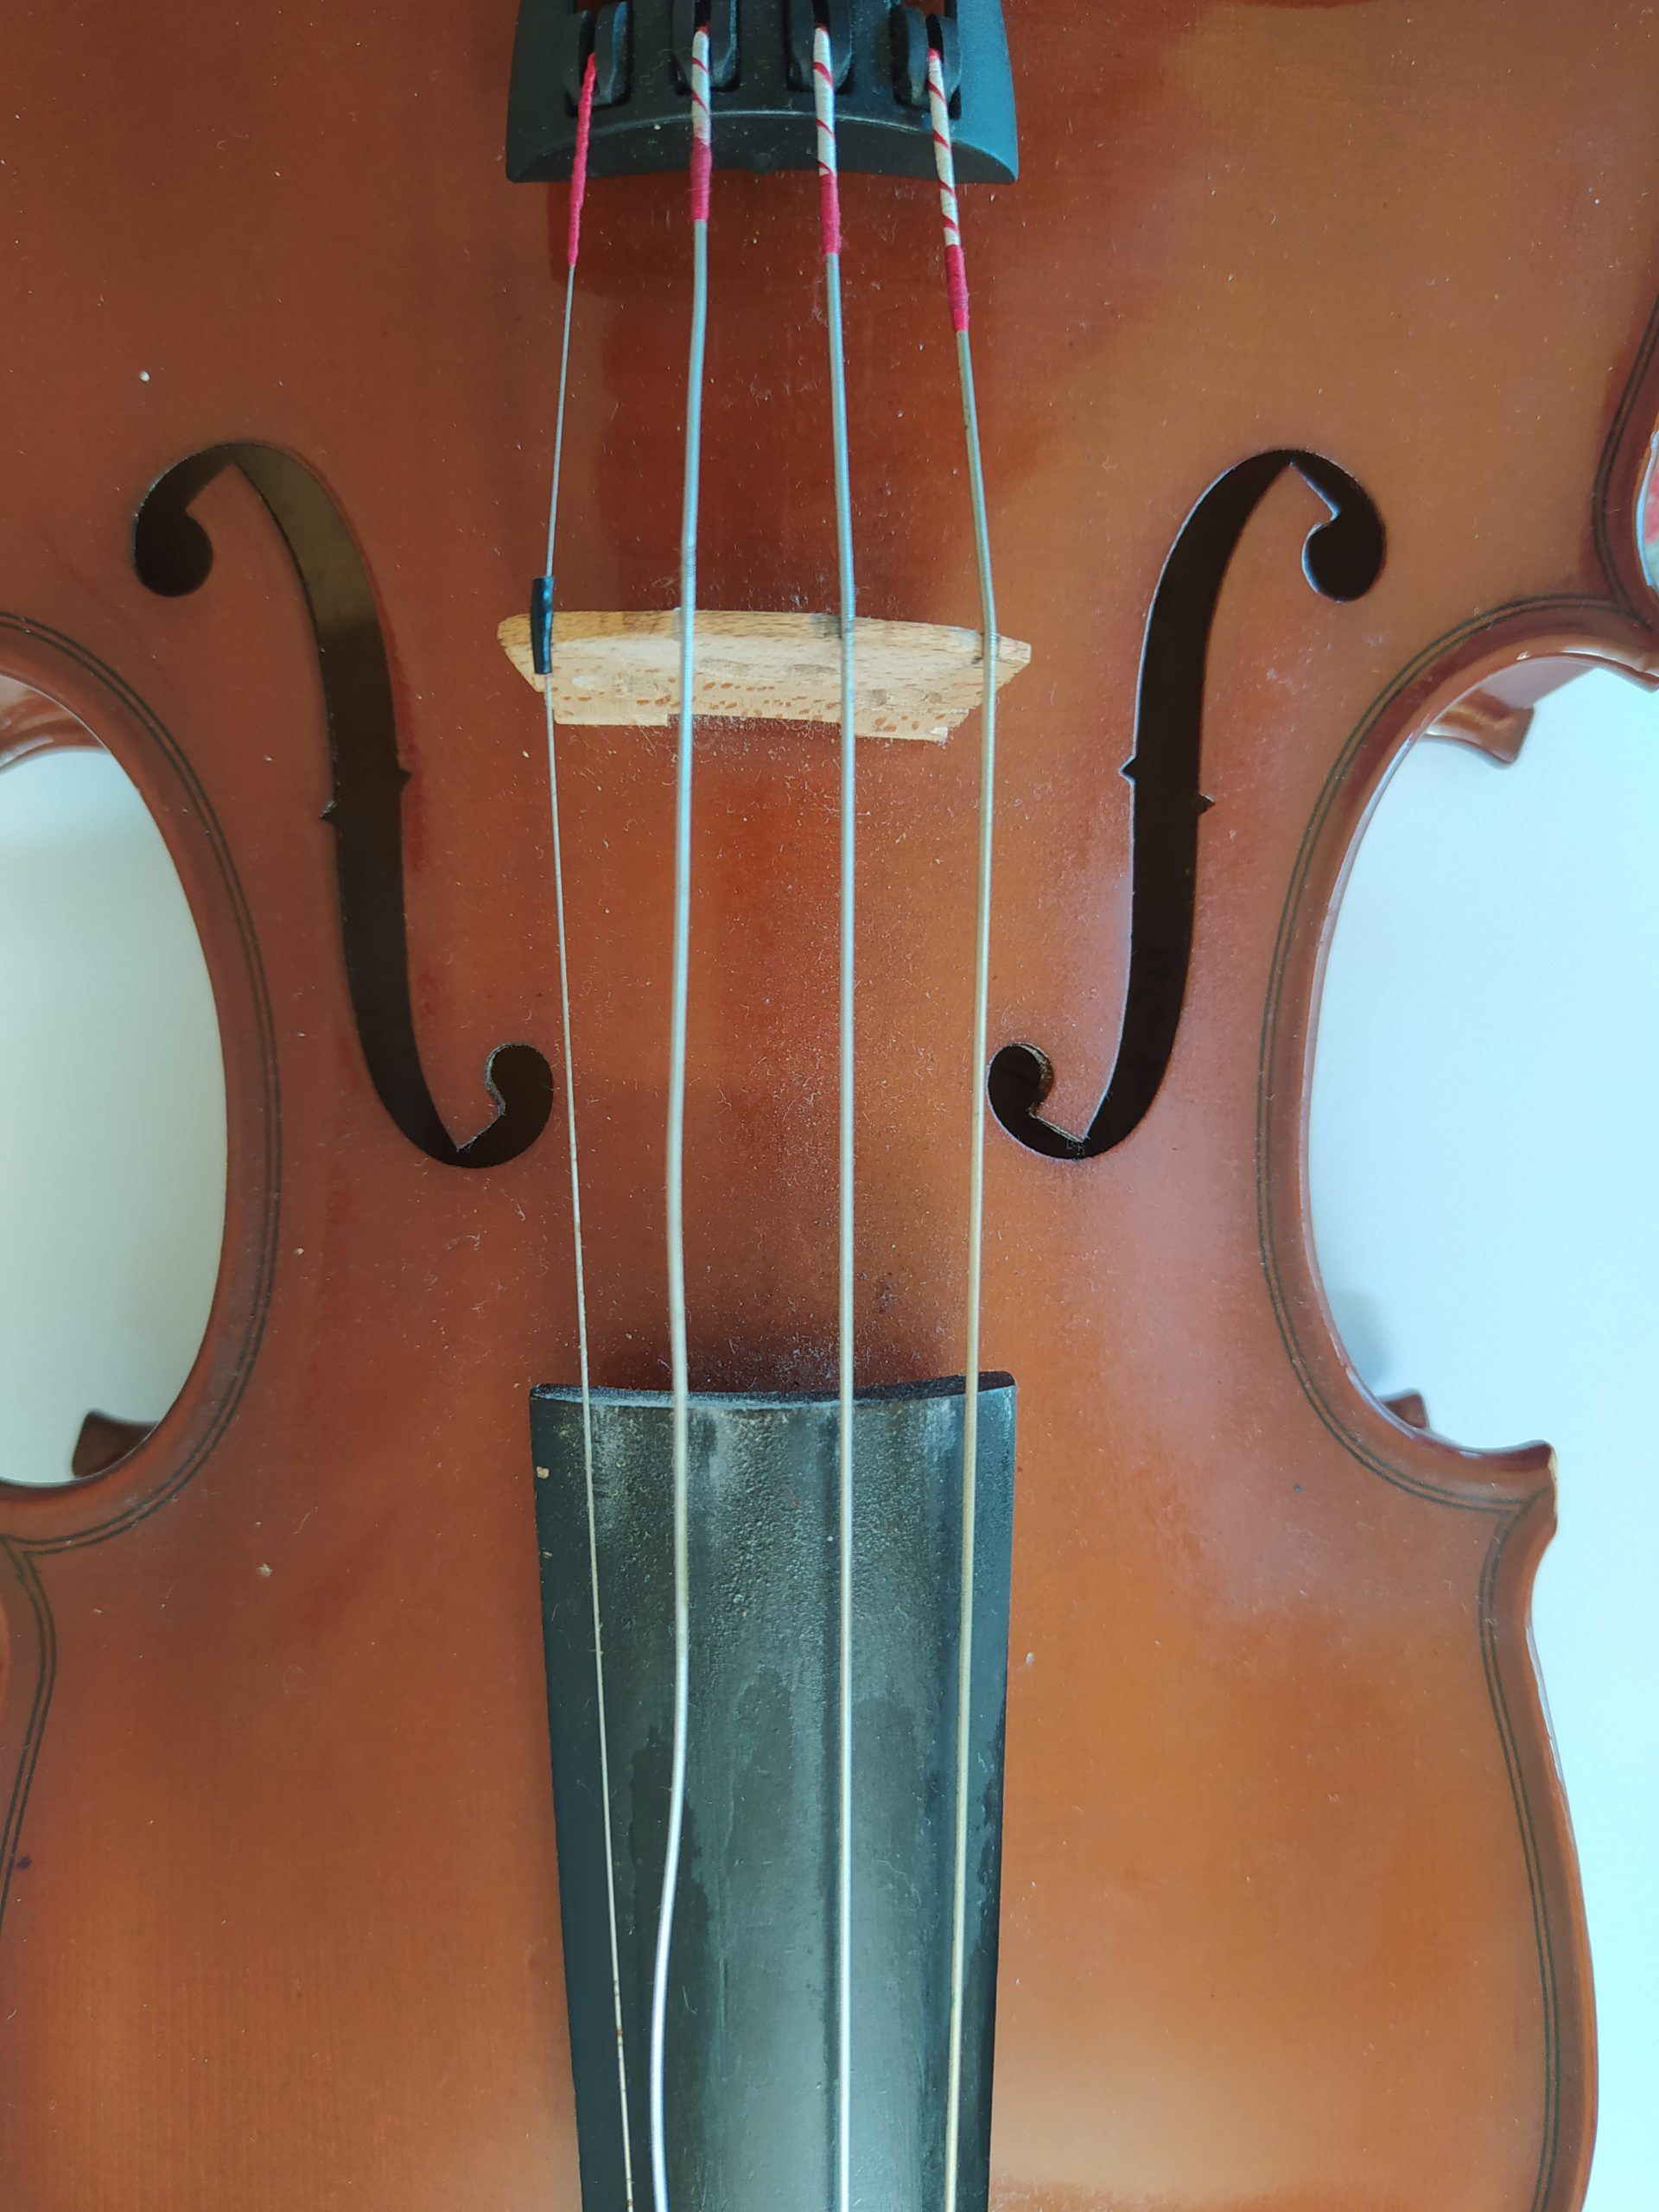 violin string that is loose but may not need to be changed